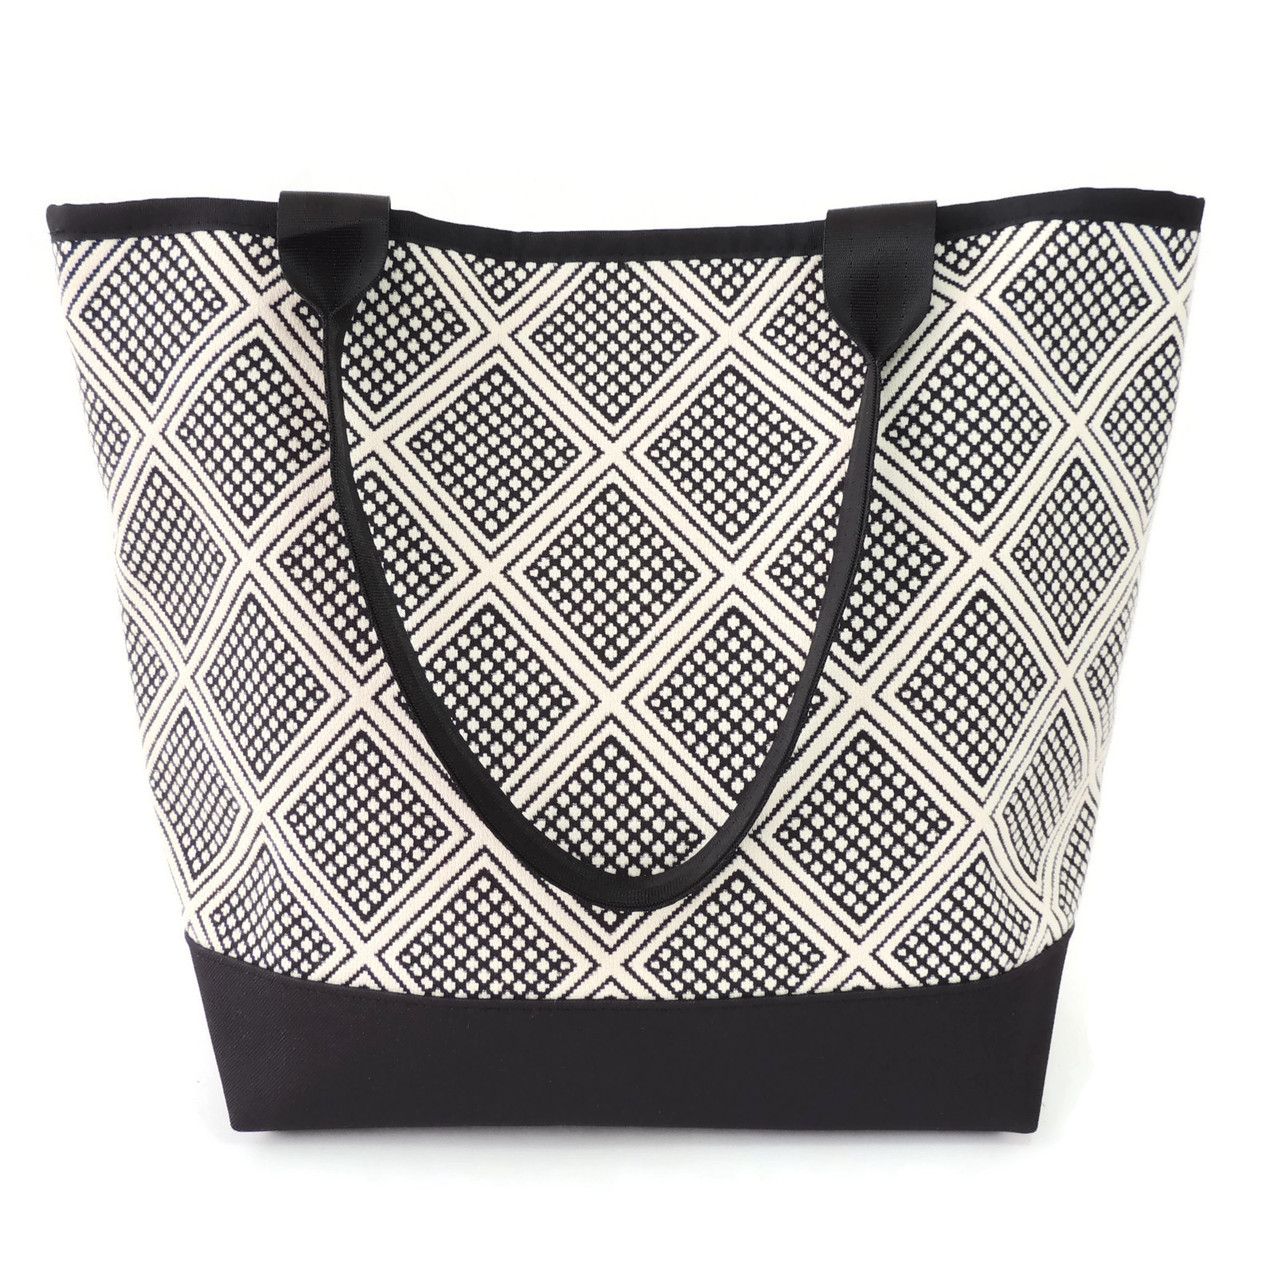 Signature Tote in Astor